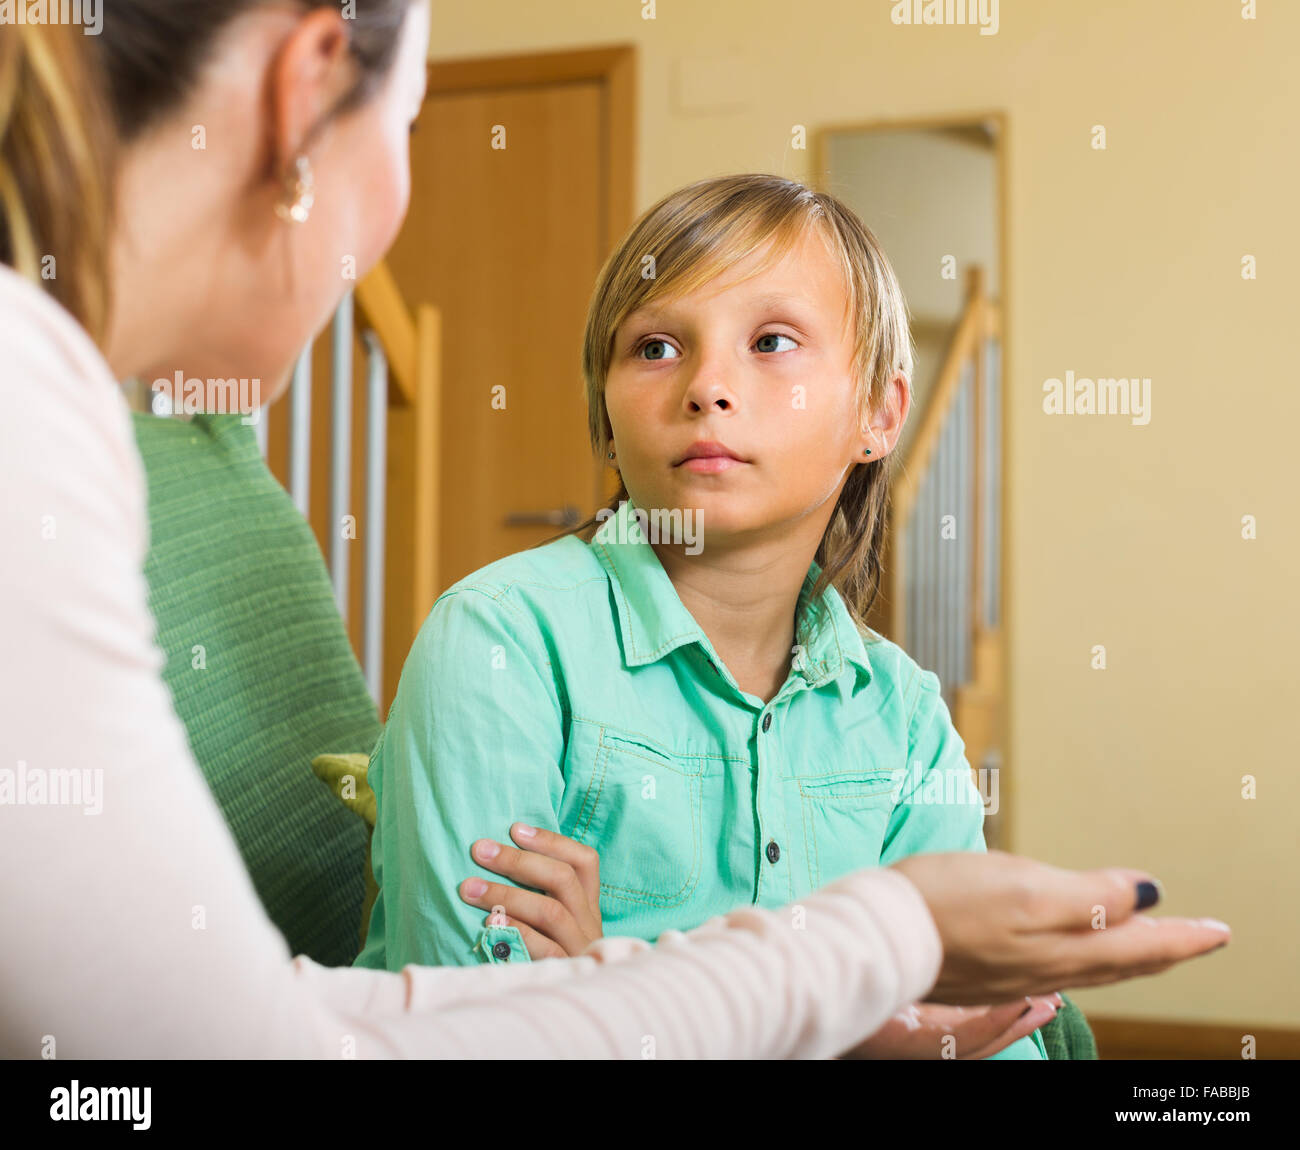 Serious Mother Scolding Naughty Teenage Son In Home Interior Stock Image